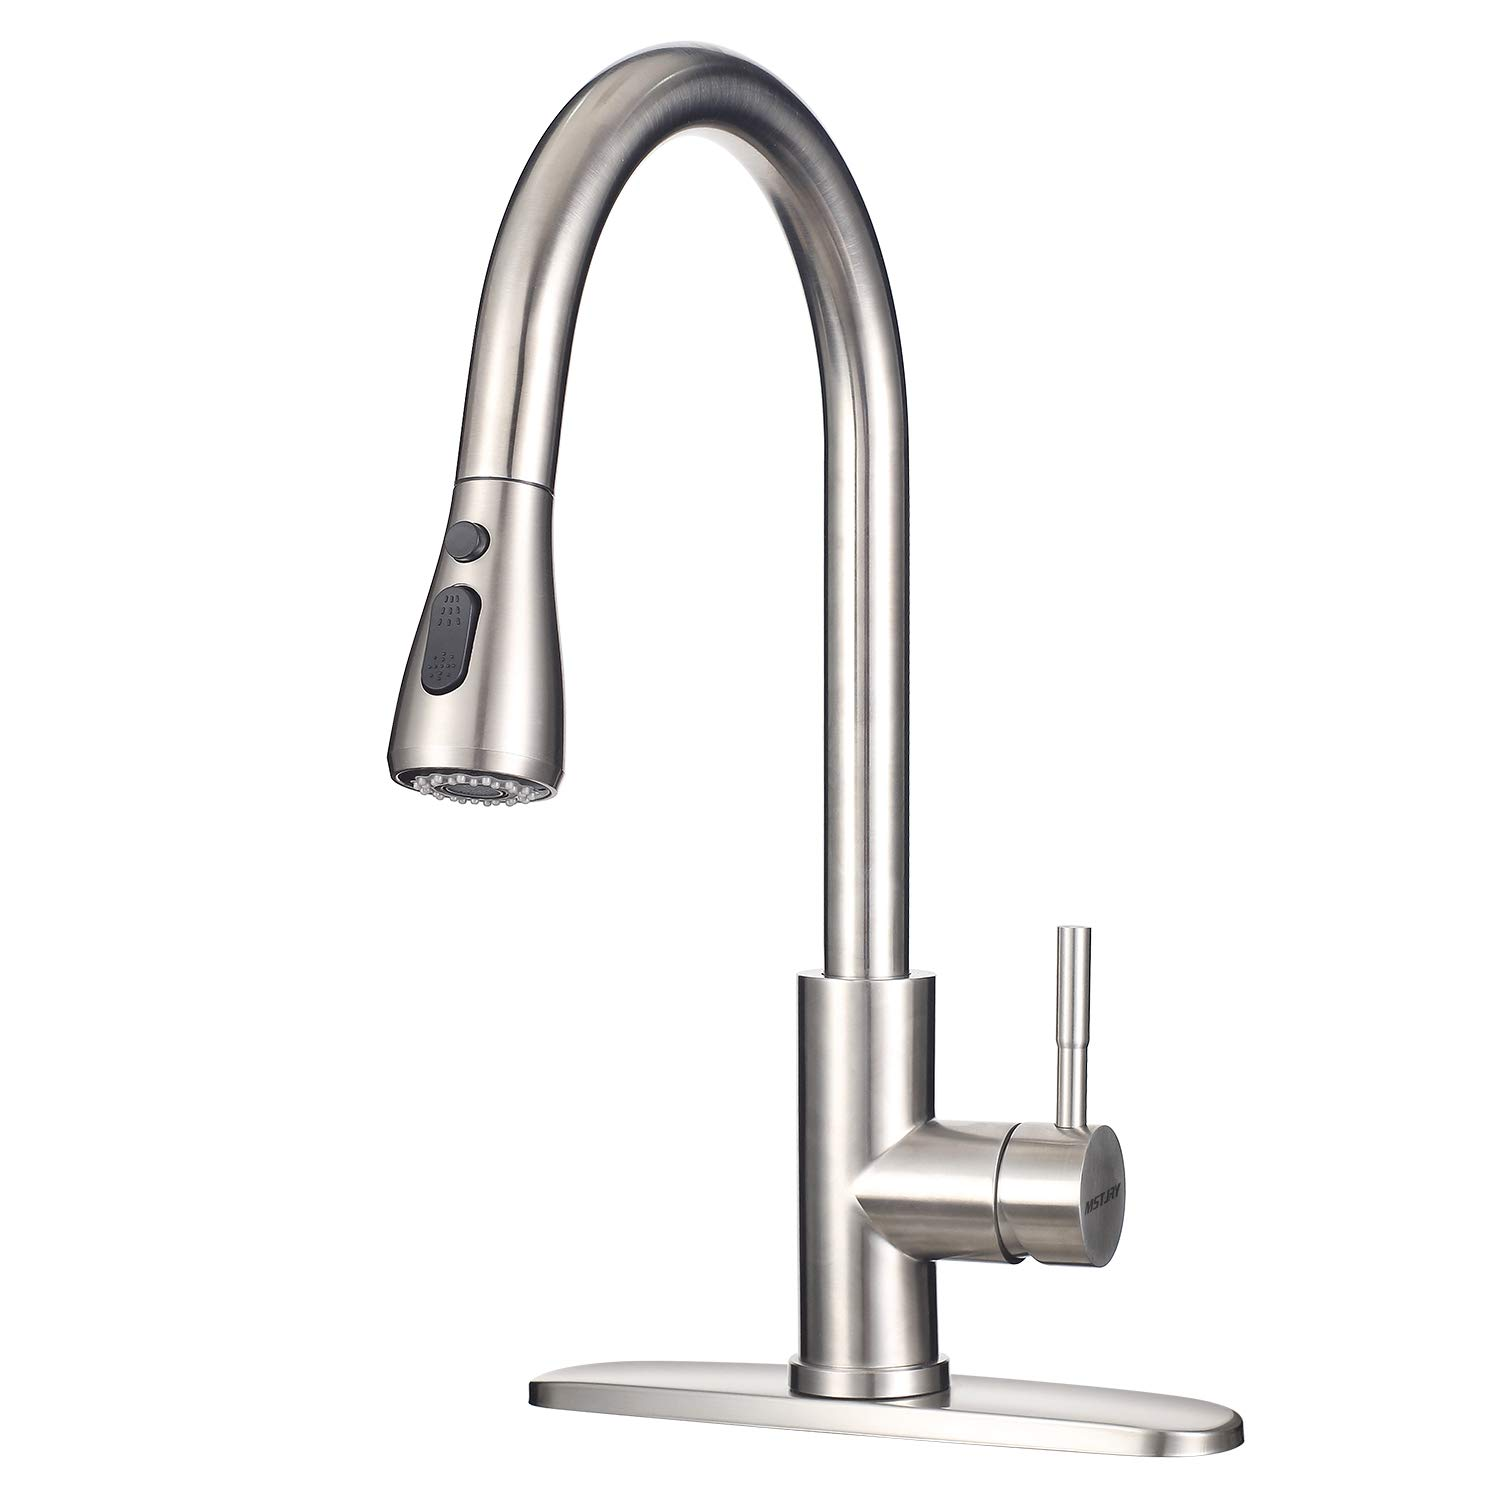 Stainless Steel Faucet with Pull Down Sprayer MSTJRY Commercial Single Handle Kitchen Sink Faucets 16.5 Height Dual Function Pull Out Spray Deck Plate Included